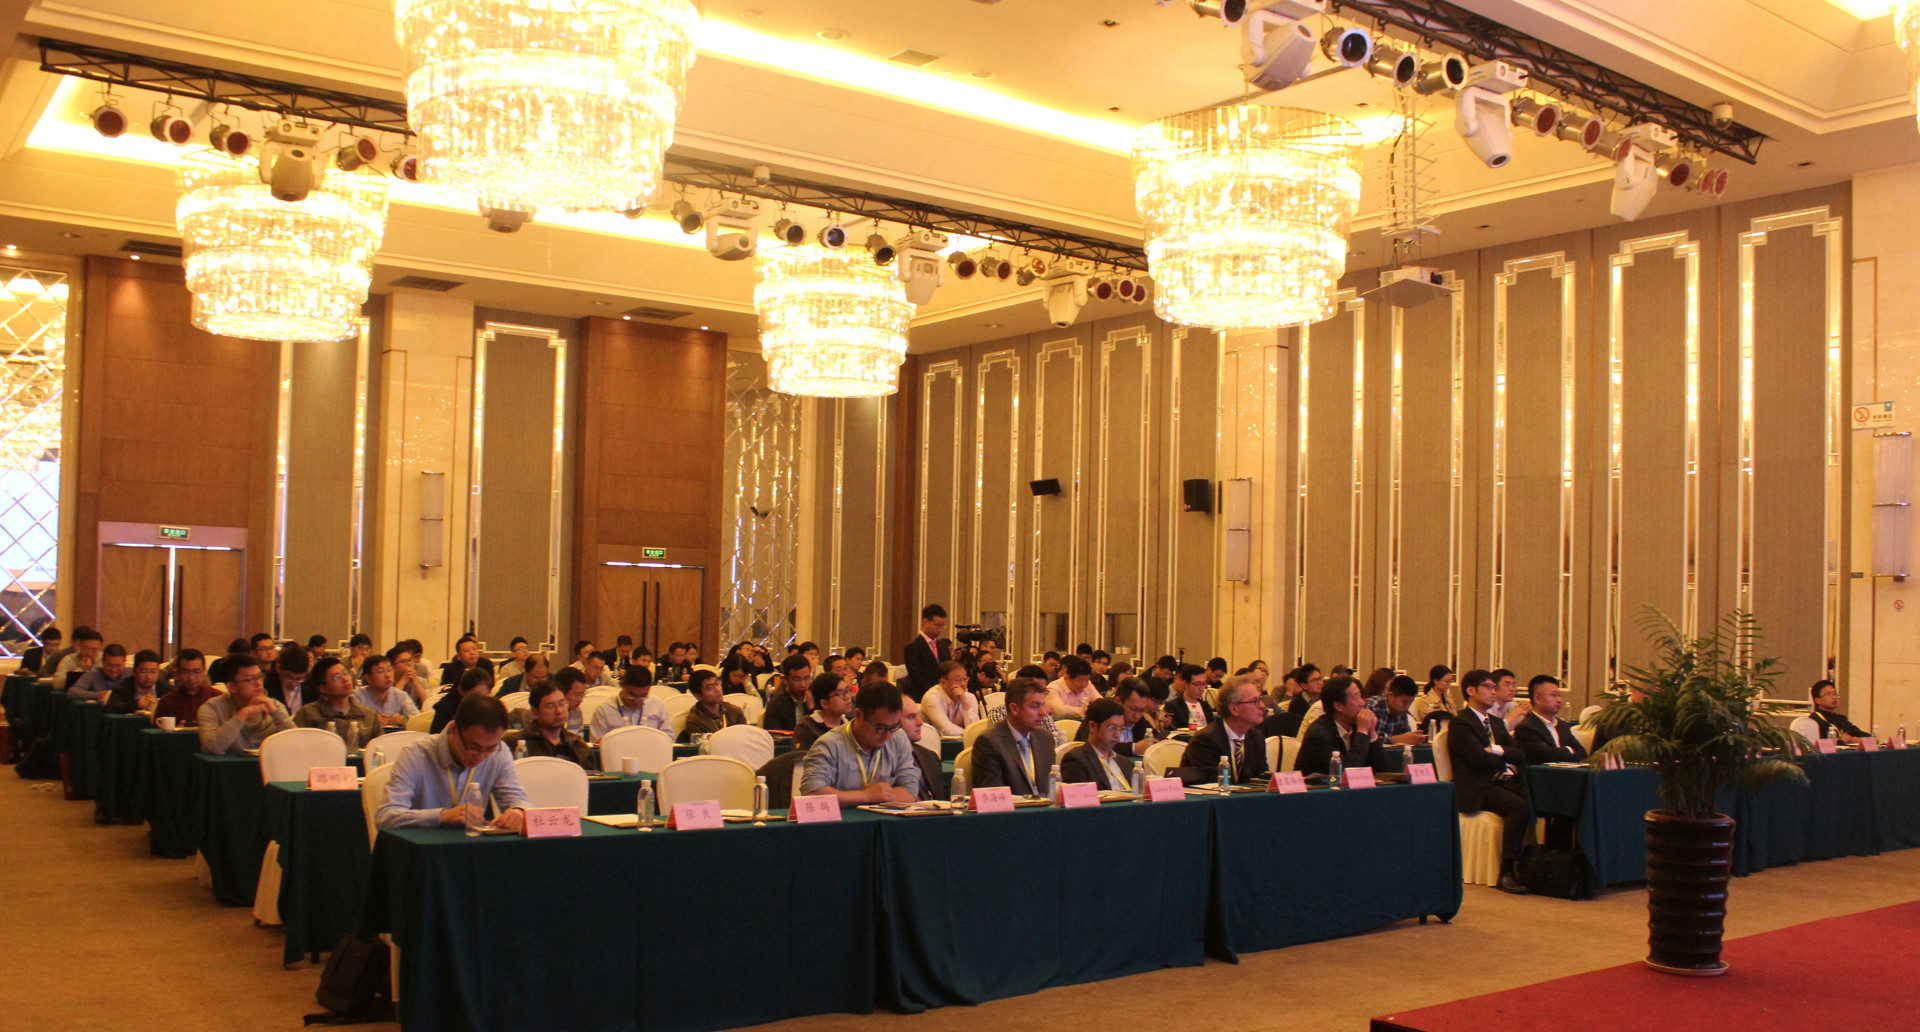 More than a hundred attendees from various countries came to this CAE event